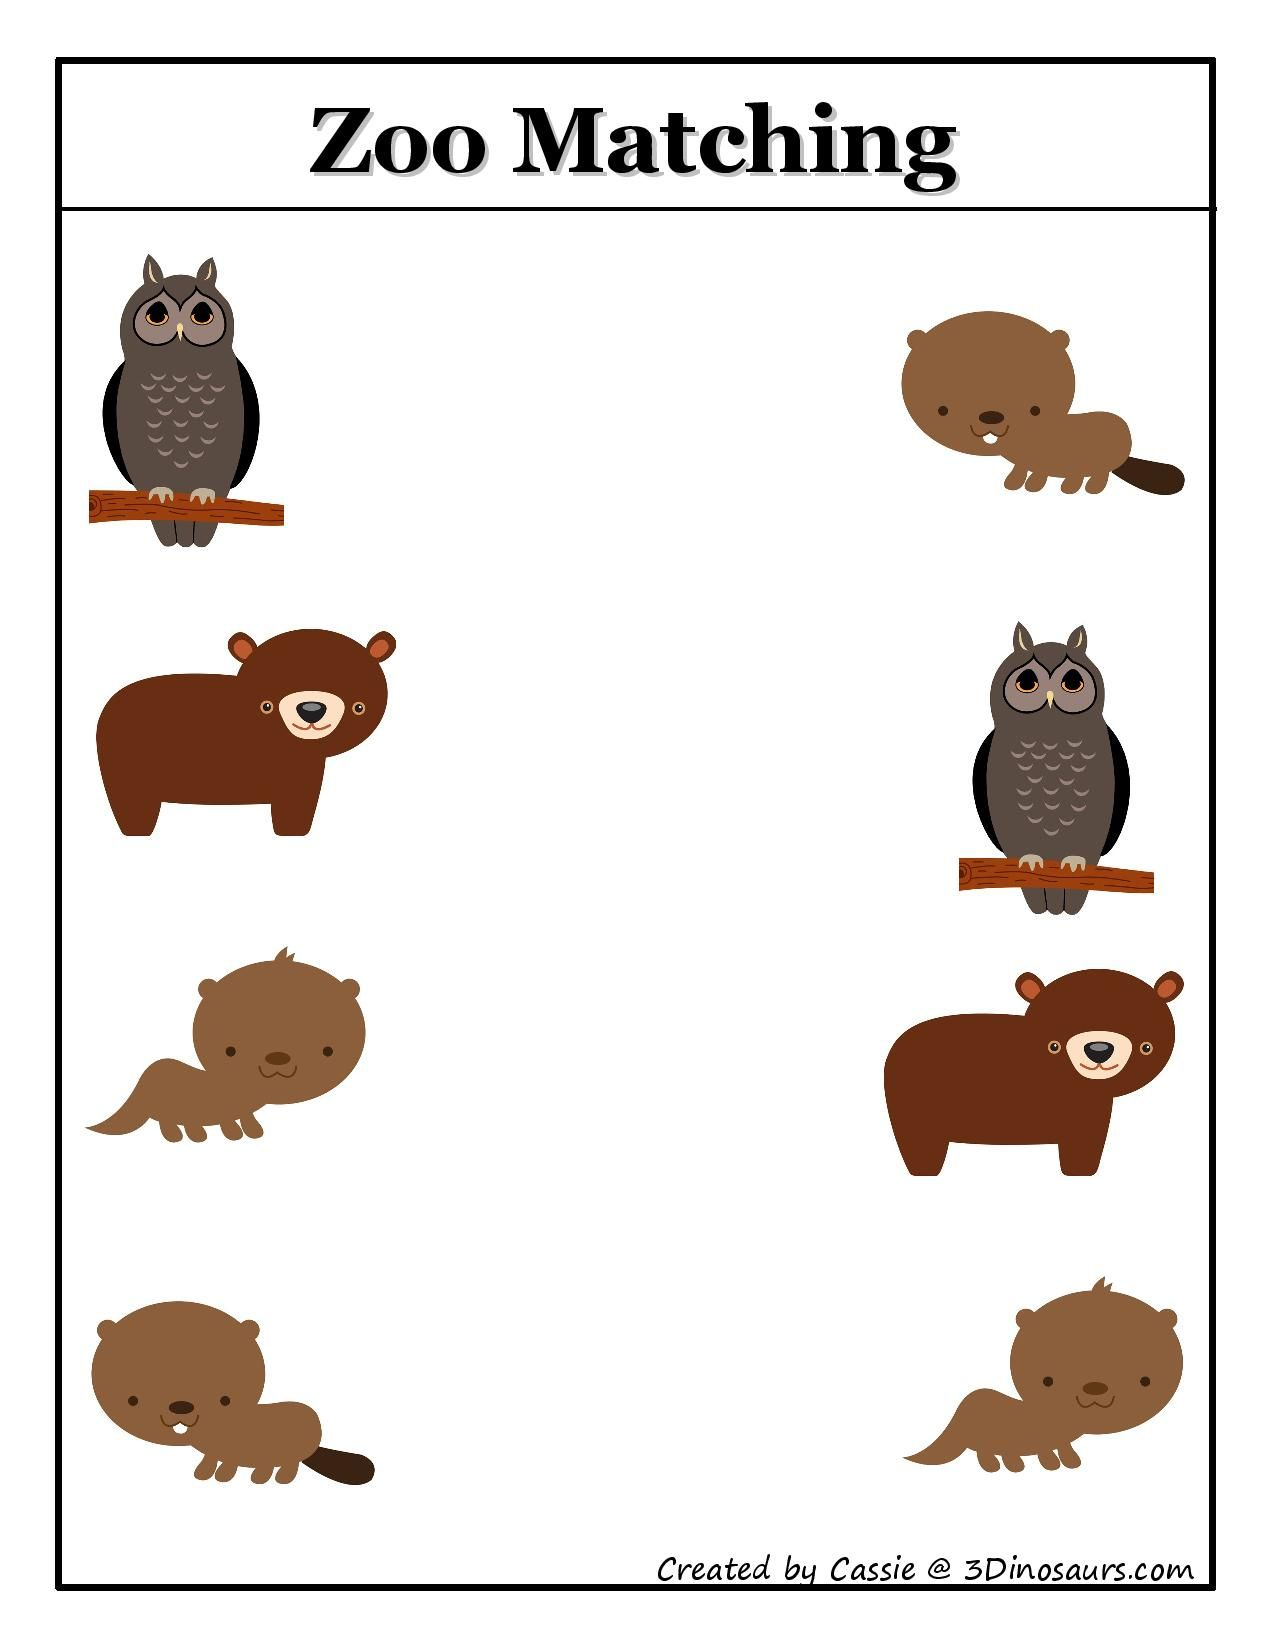 Stomping Romping And Roaring Printables Gross Motor Crafts More Animal Activities For Kids Zoo Activities Zoo Animal Activities